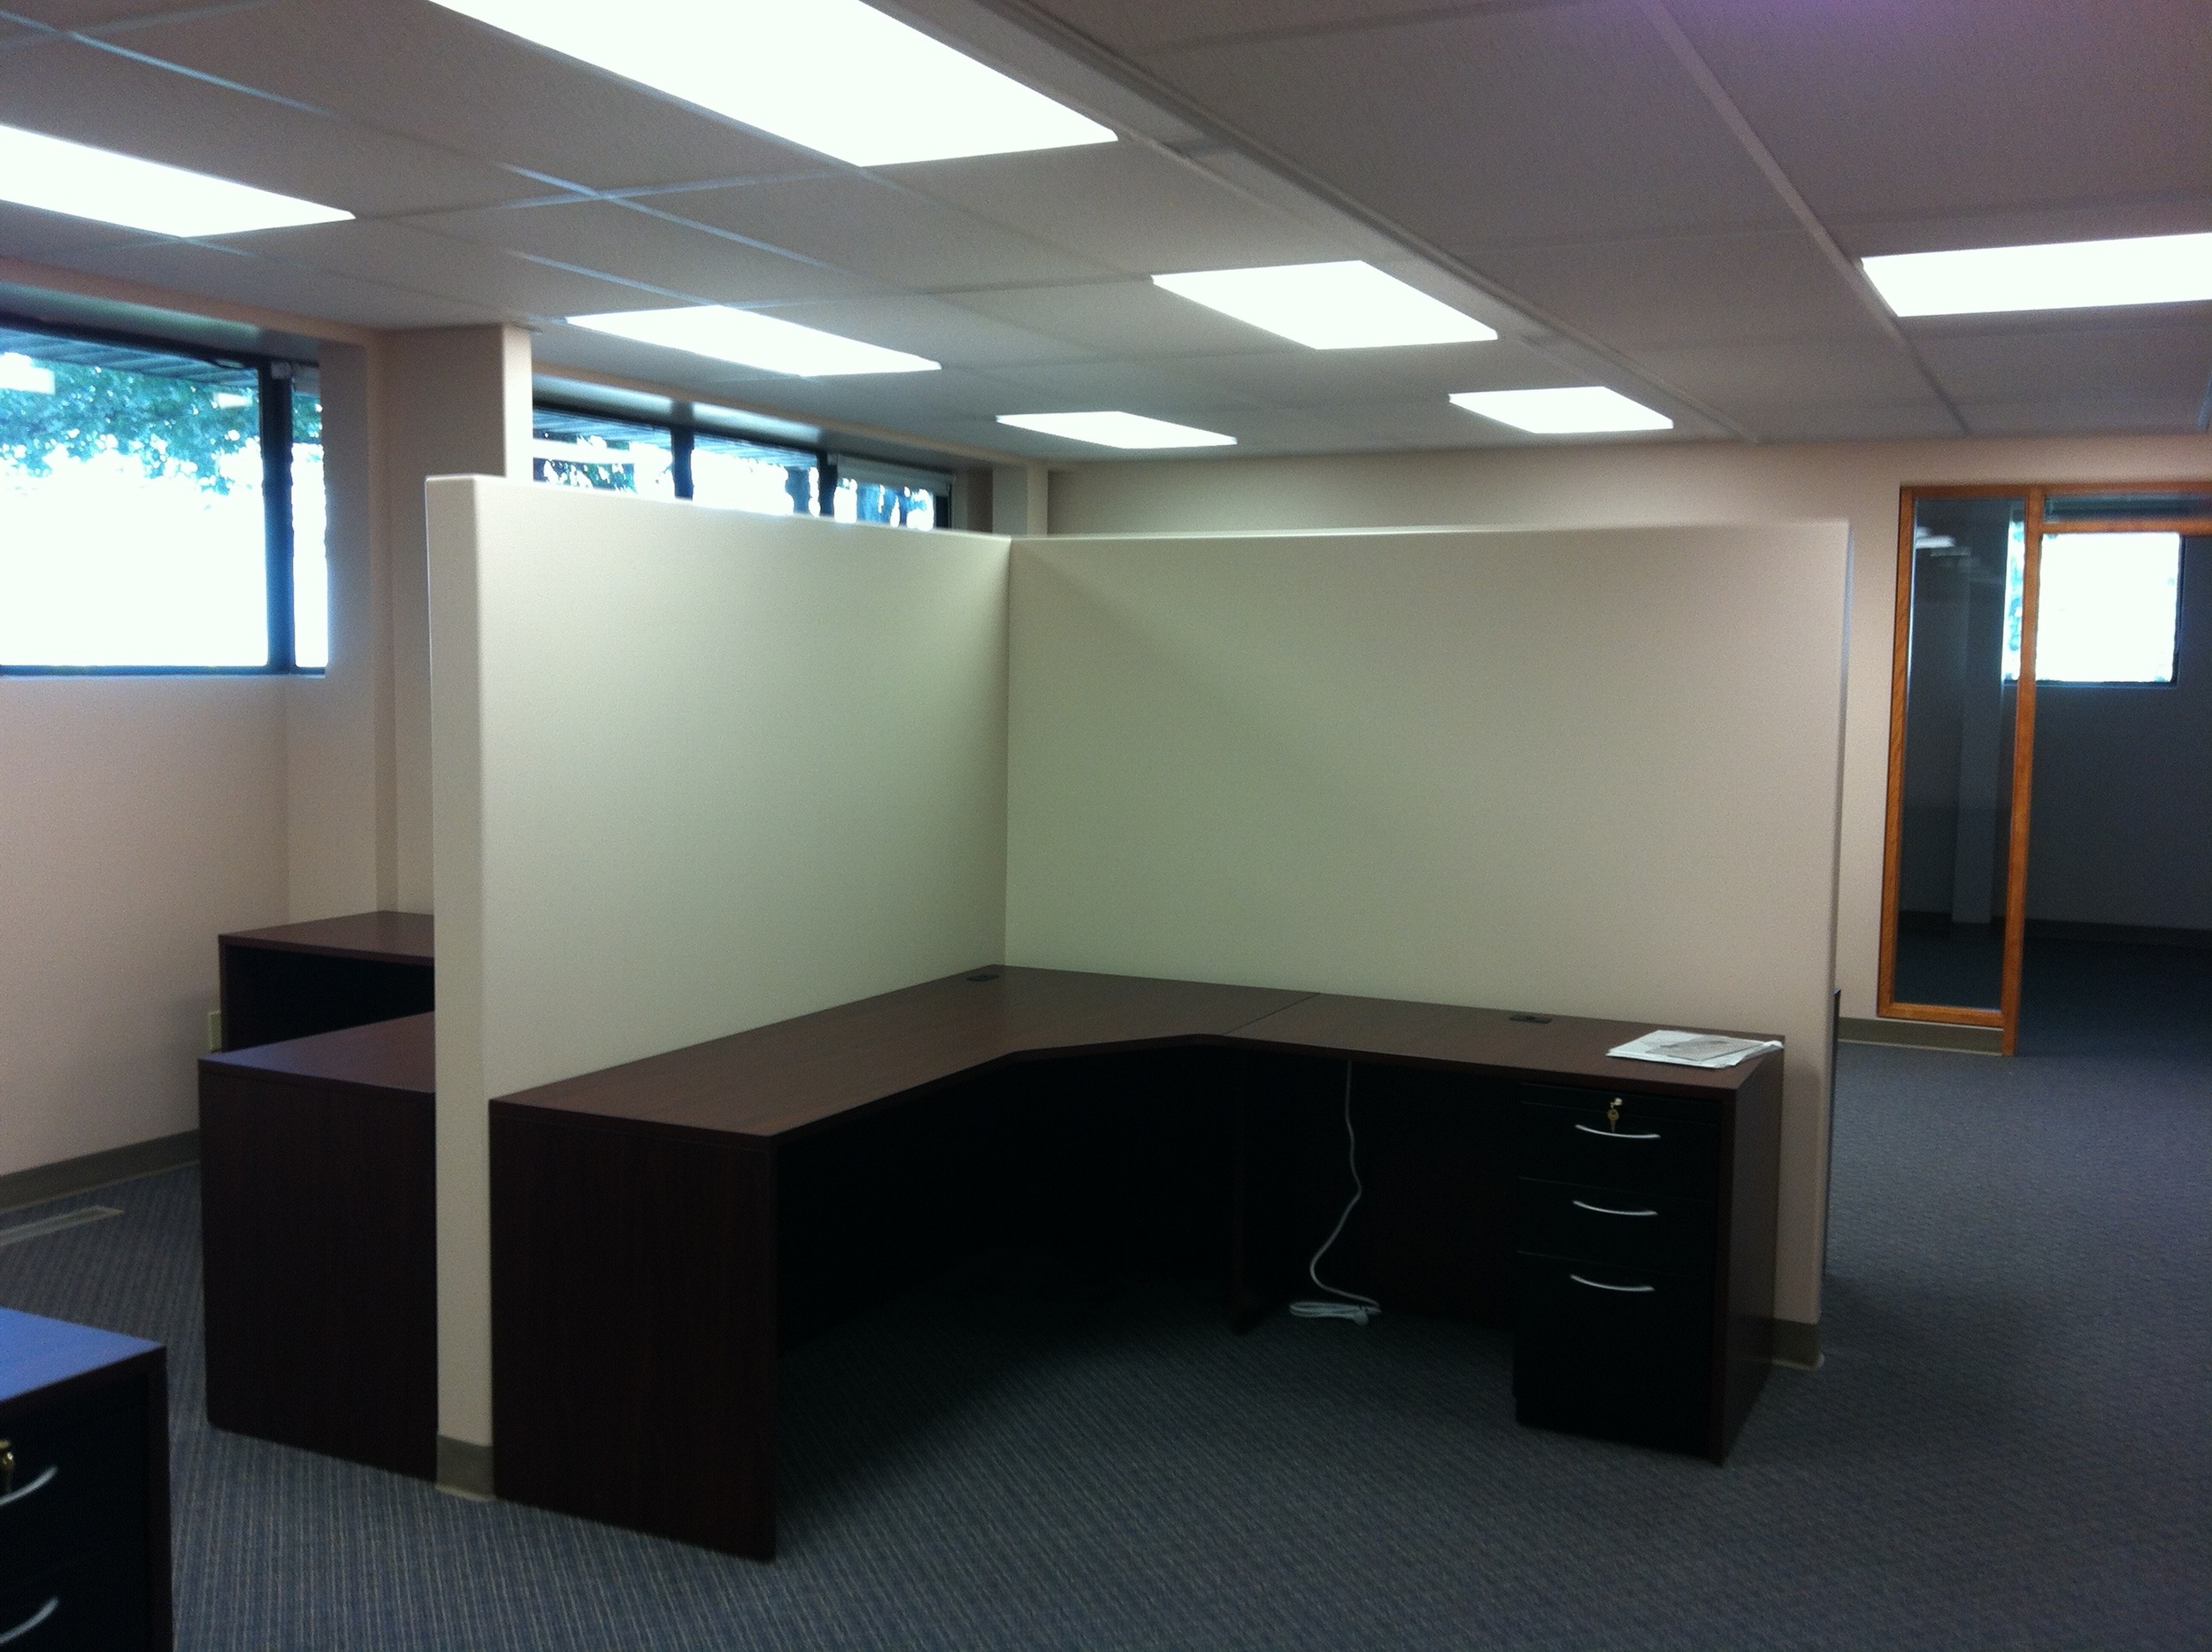 OR03  Office Renovations That Work - General Contractors Commercial Renovations  in Edmonton, Office  and  Warehouse Project Contractors